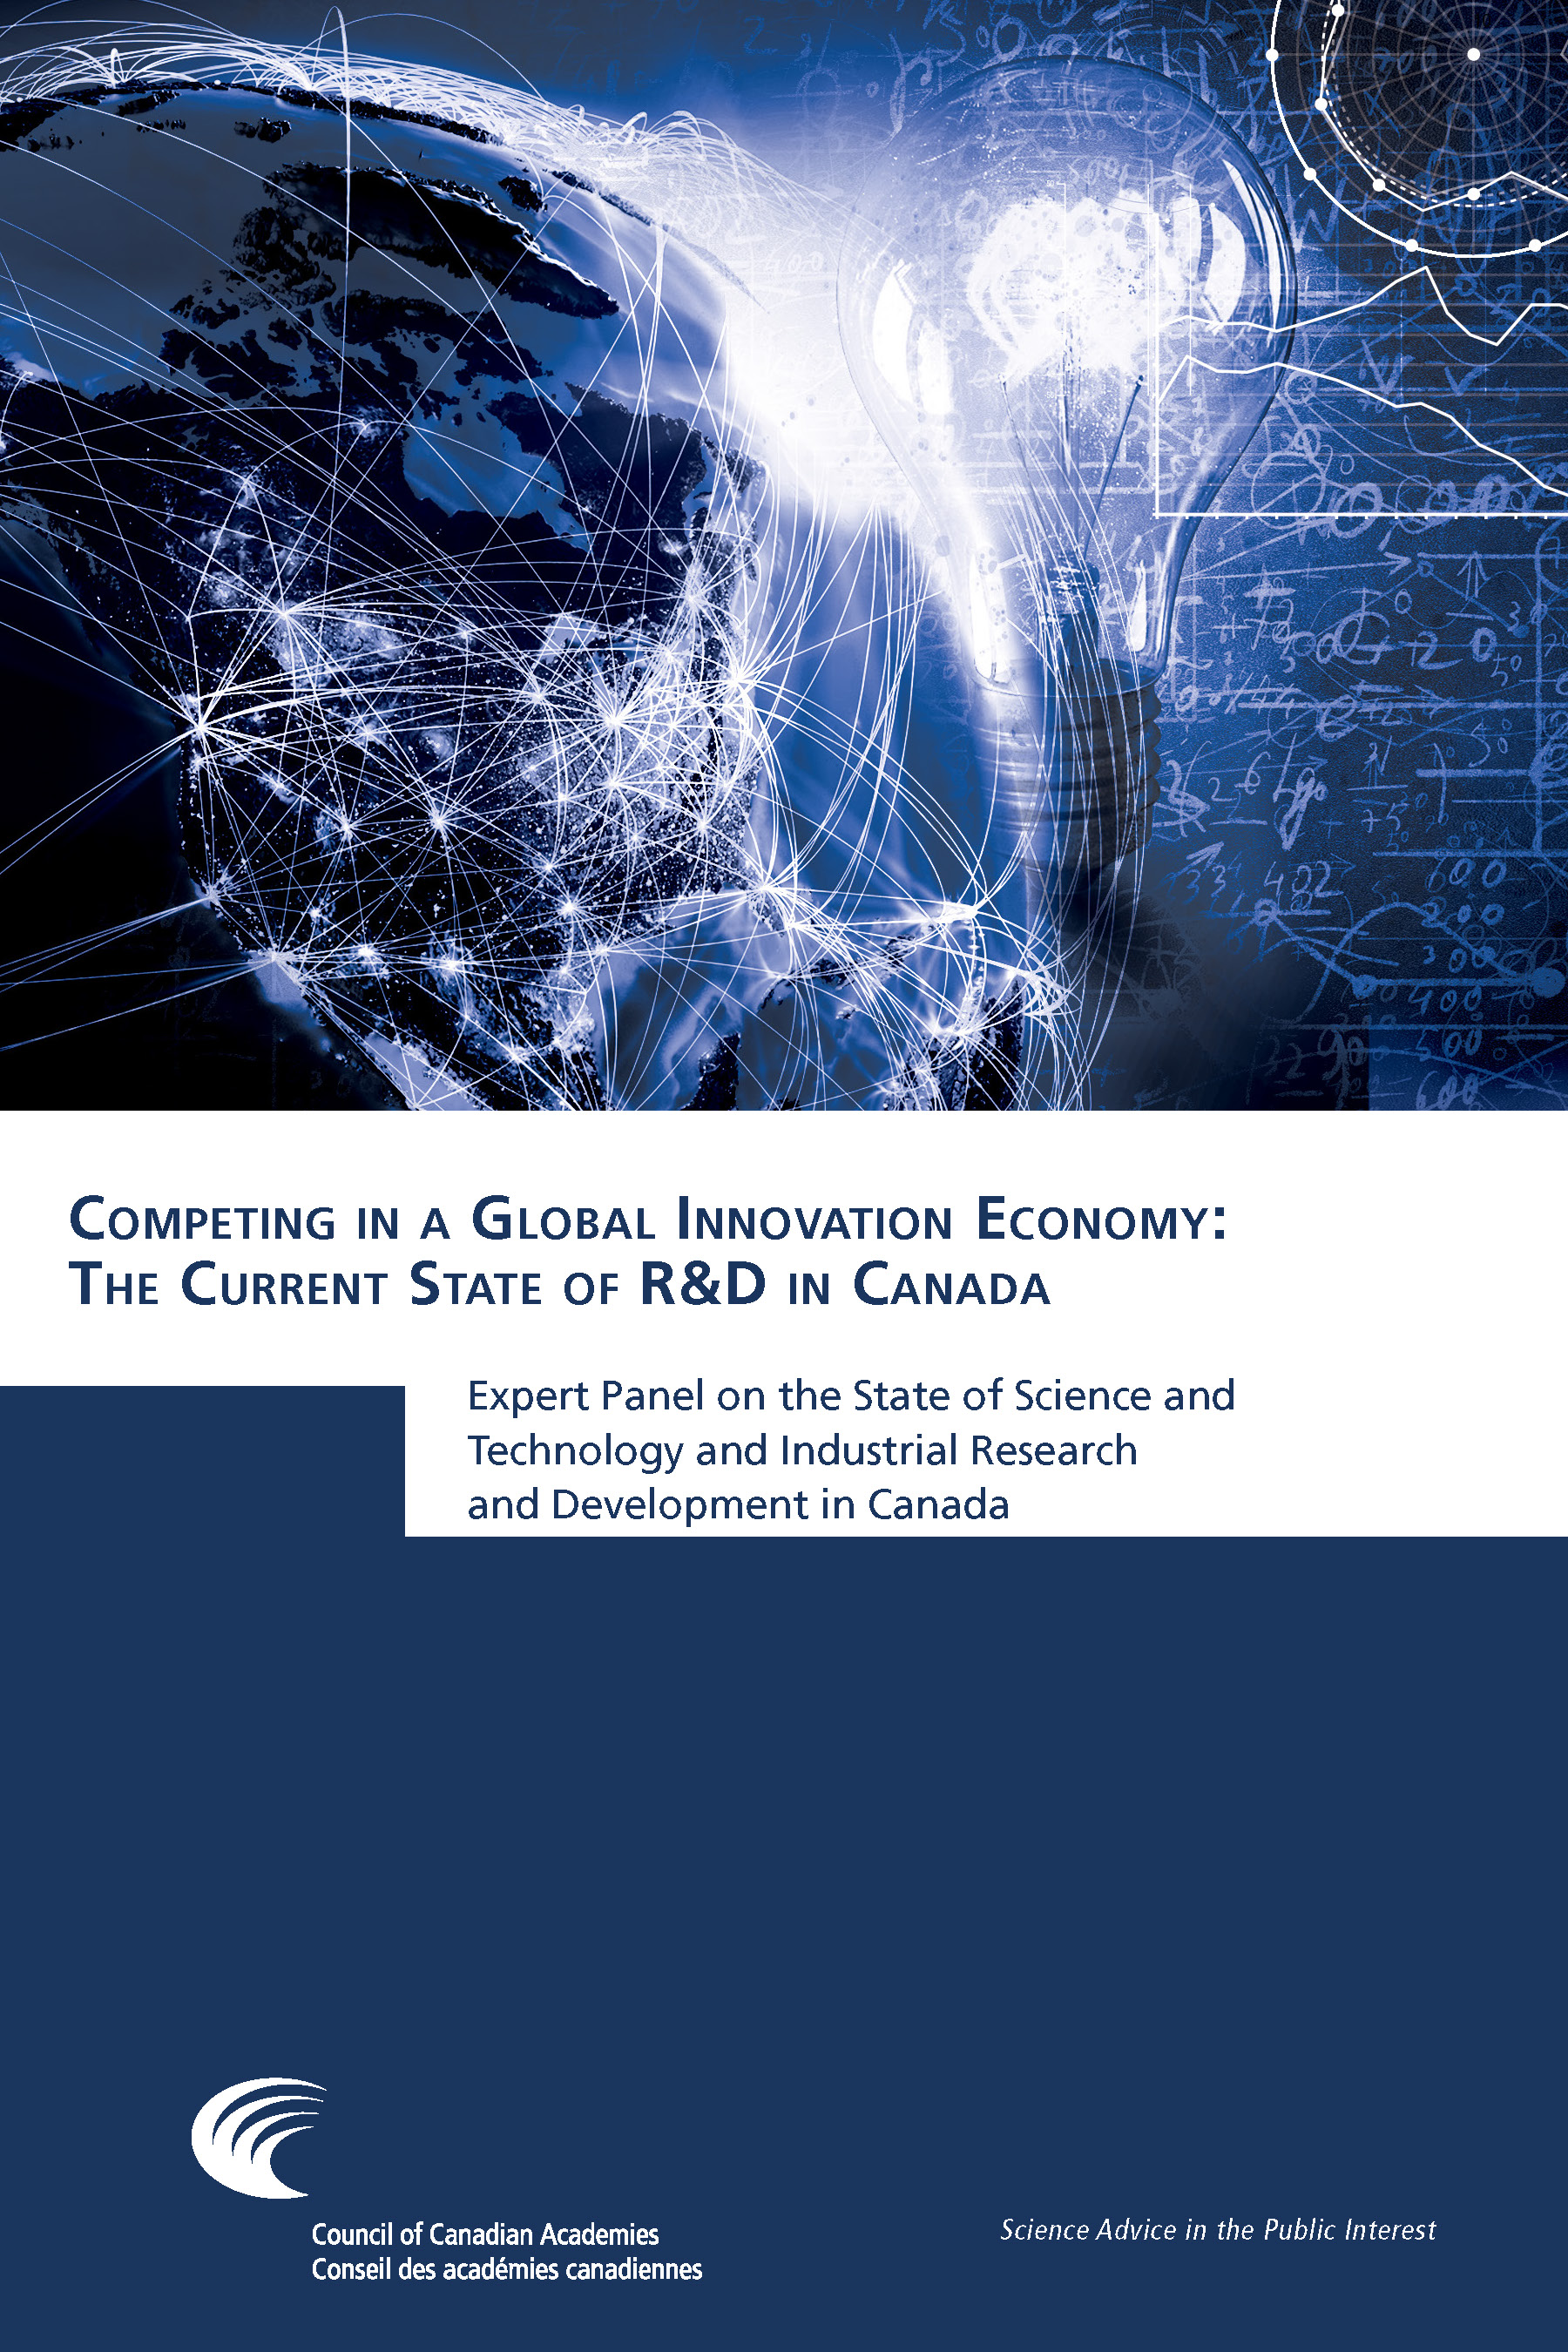 Competing in a Global Innovation Economy: The Current State of R&D in Canada